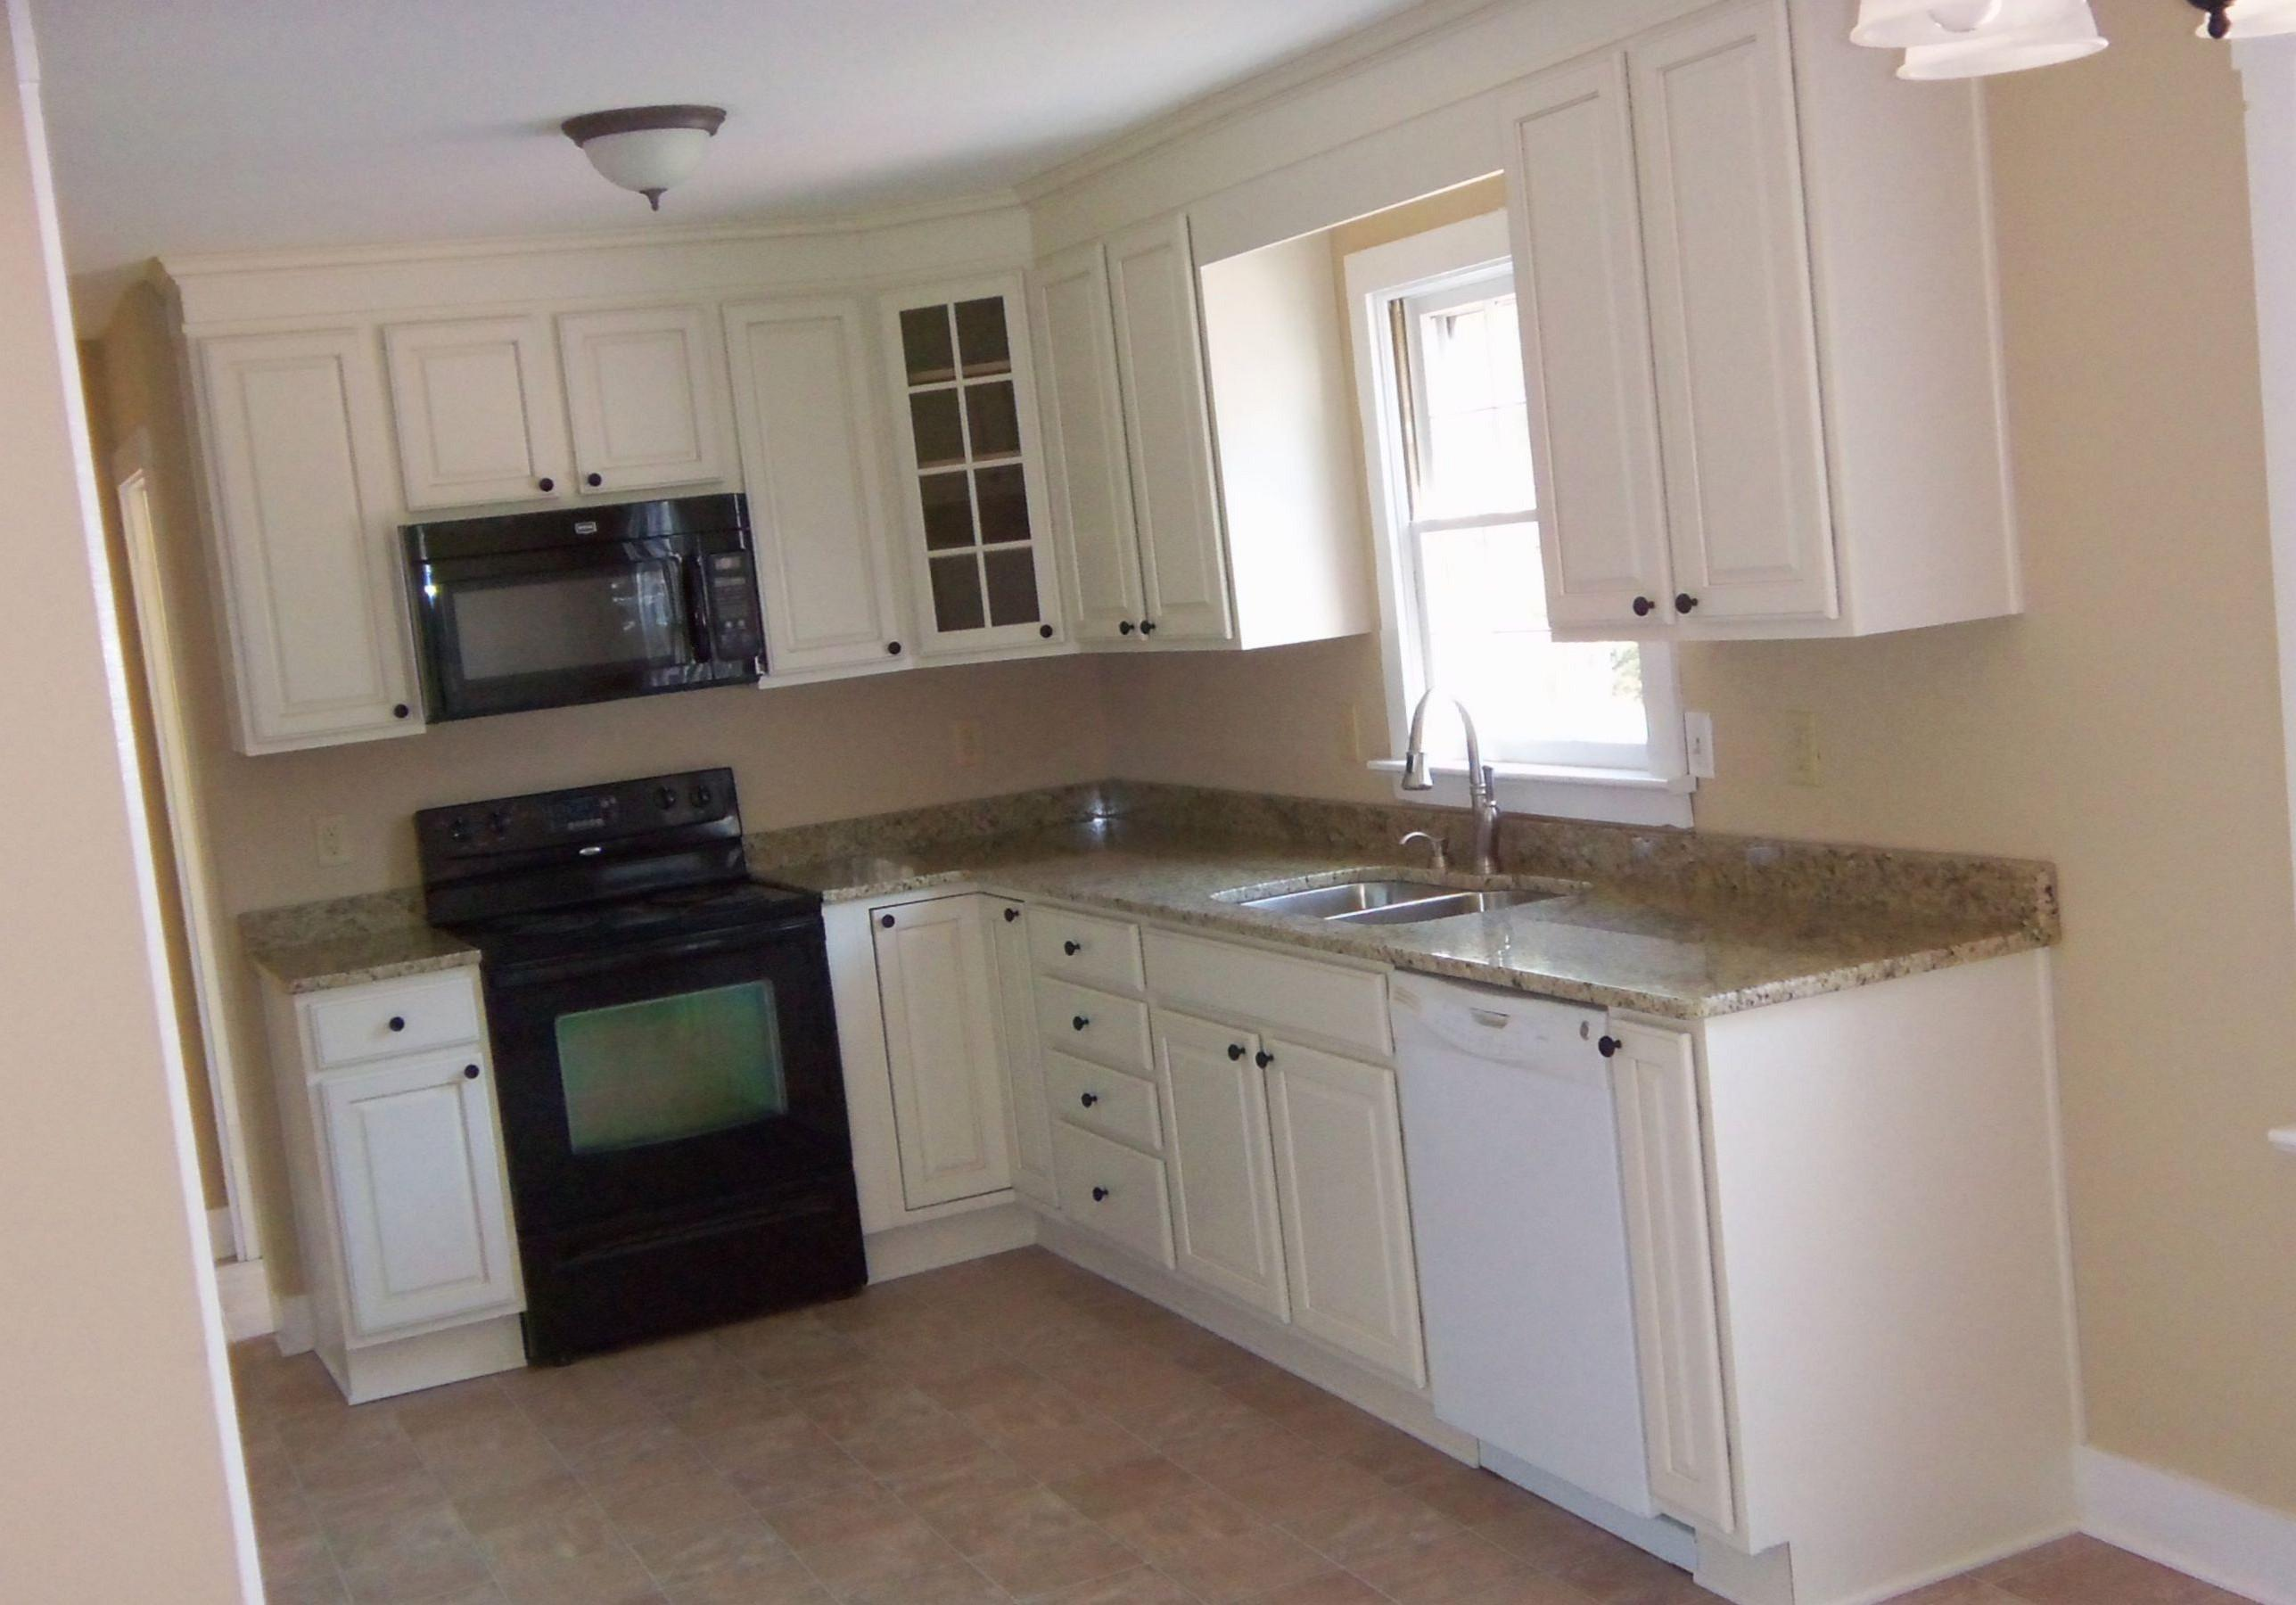 Granite Countertops Mix Stainless Steel Sink Shaped